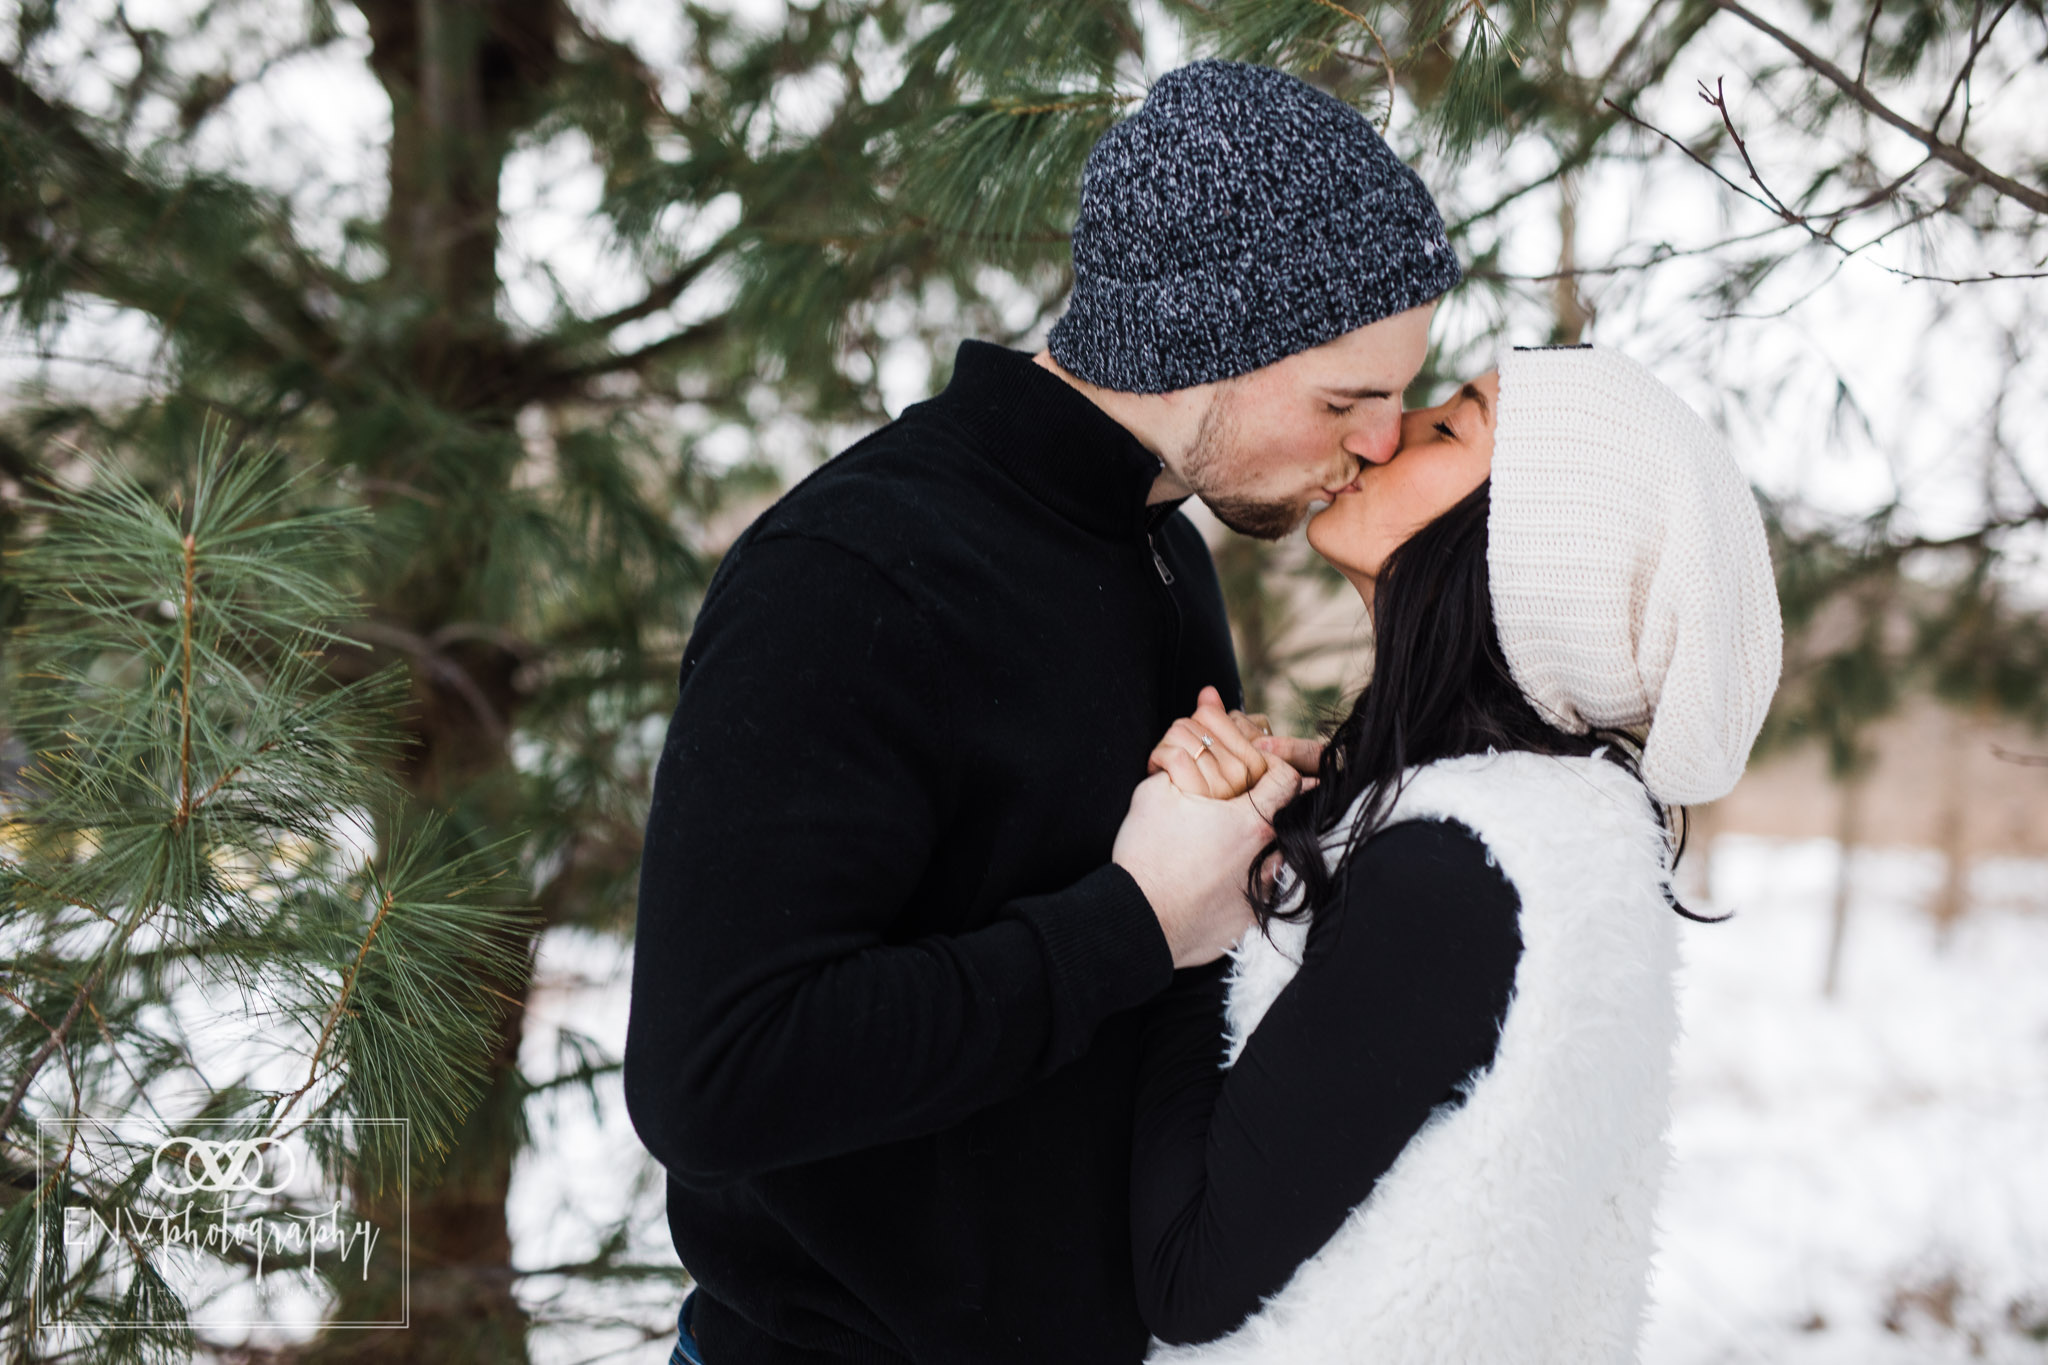 columbus ohio mount vernon ohio winter snowy family engagement photography (9).jpg